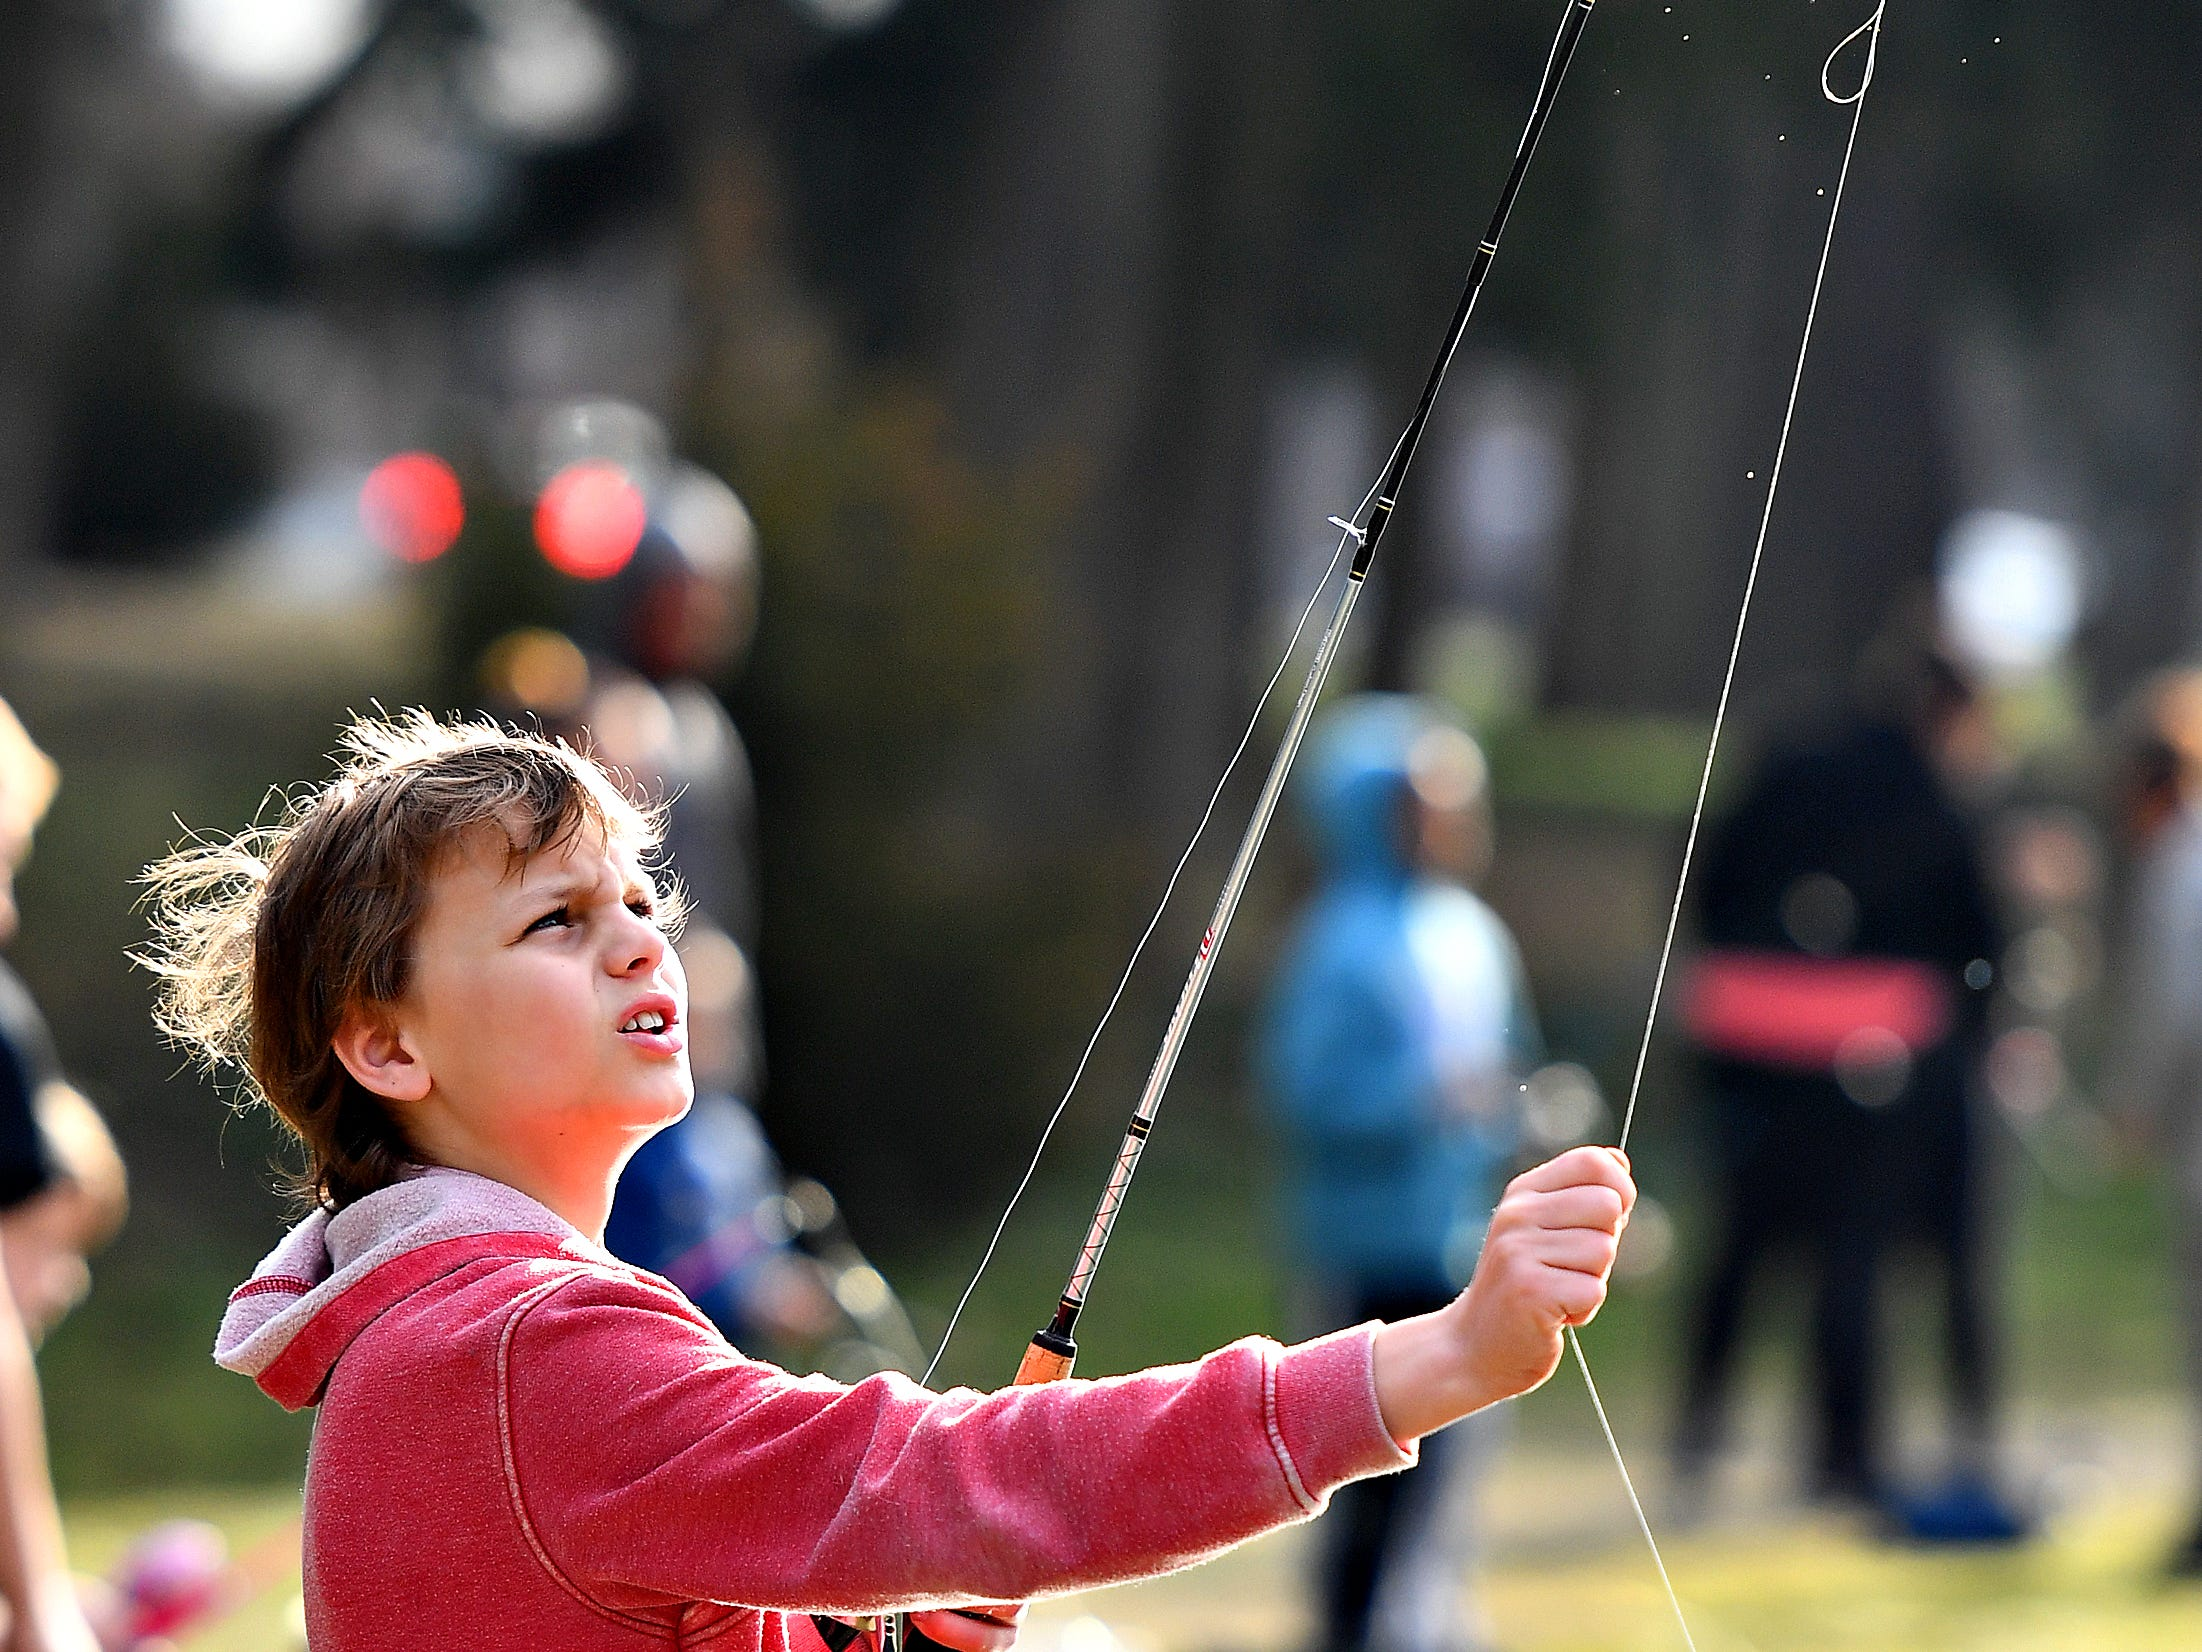 Ian Devos, 10, of Manchester Township, tugs to straighten his fishing line before casting during the 21st Annual William Shaffer Trout Fishing Derby at Kiwanis Lake in York City, Saturday, March 30, 2019. Dawn J. Sagert photo